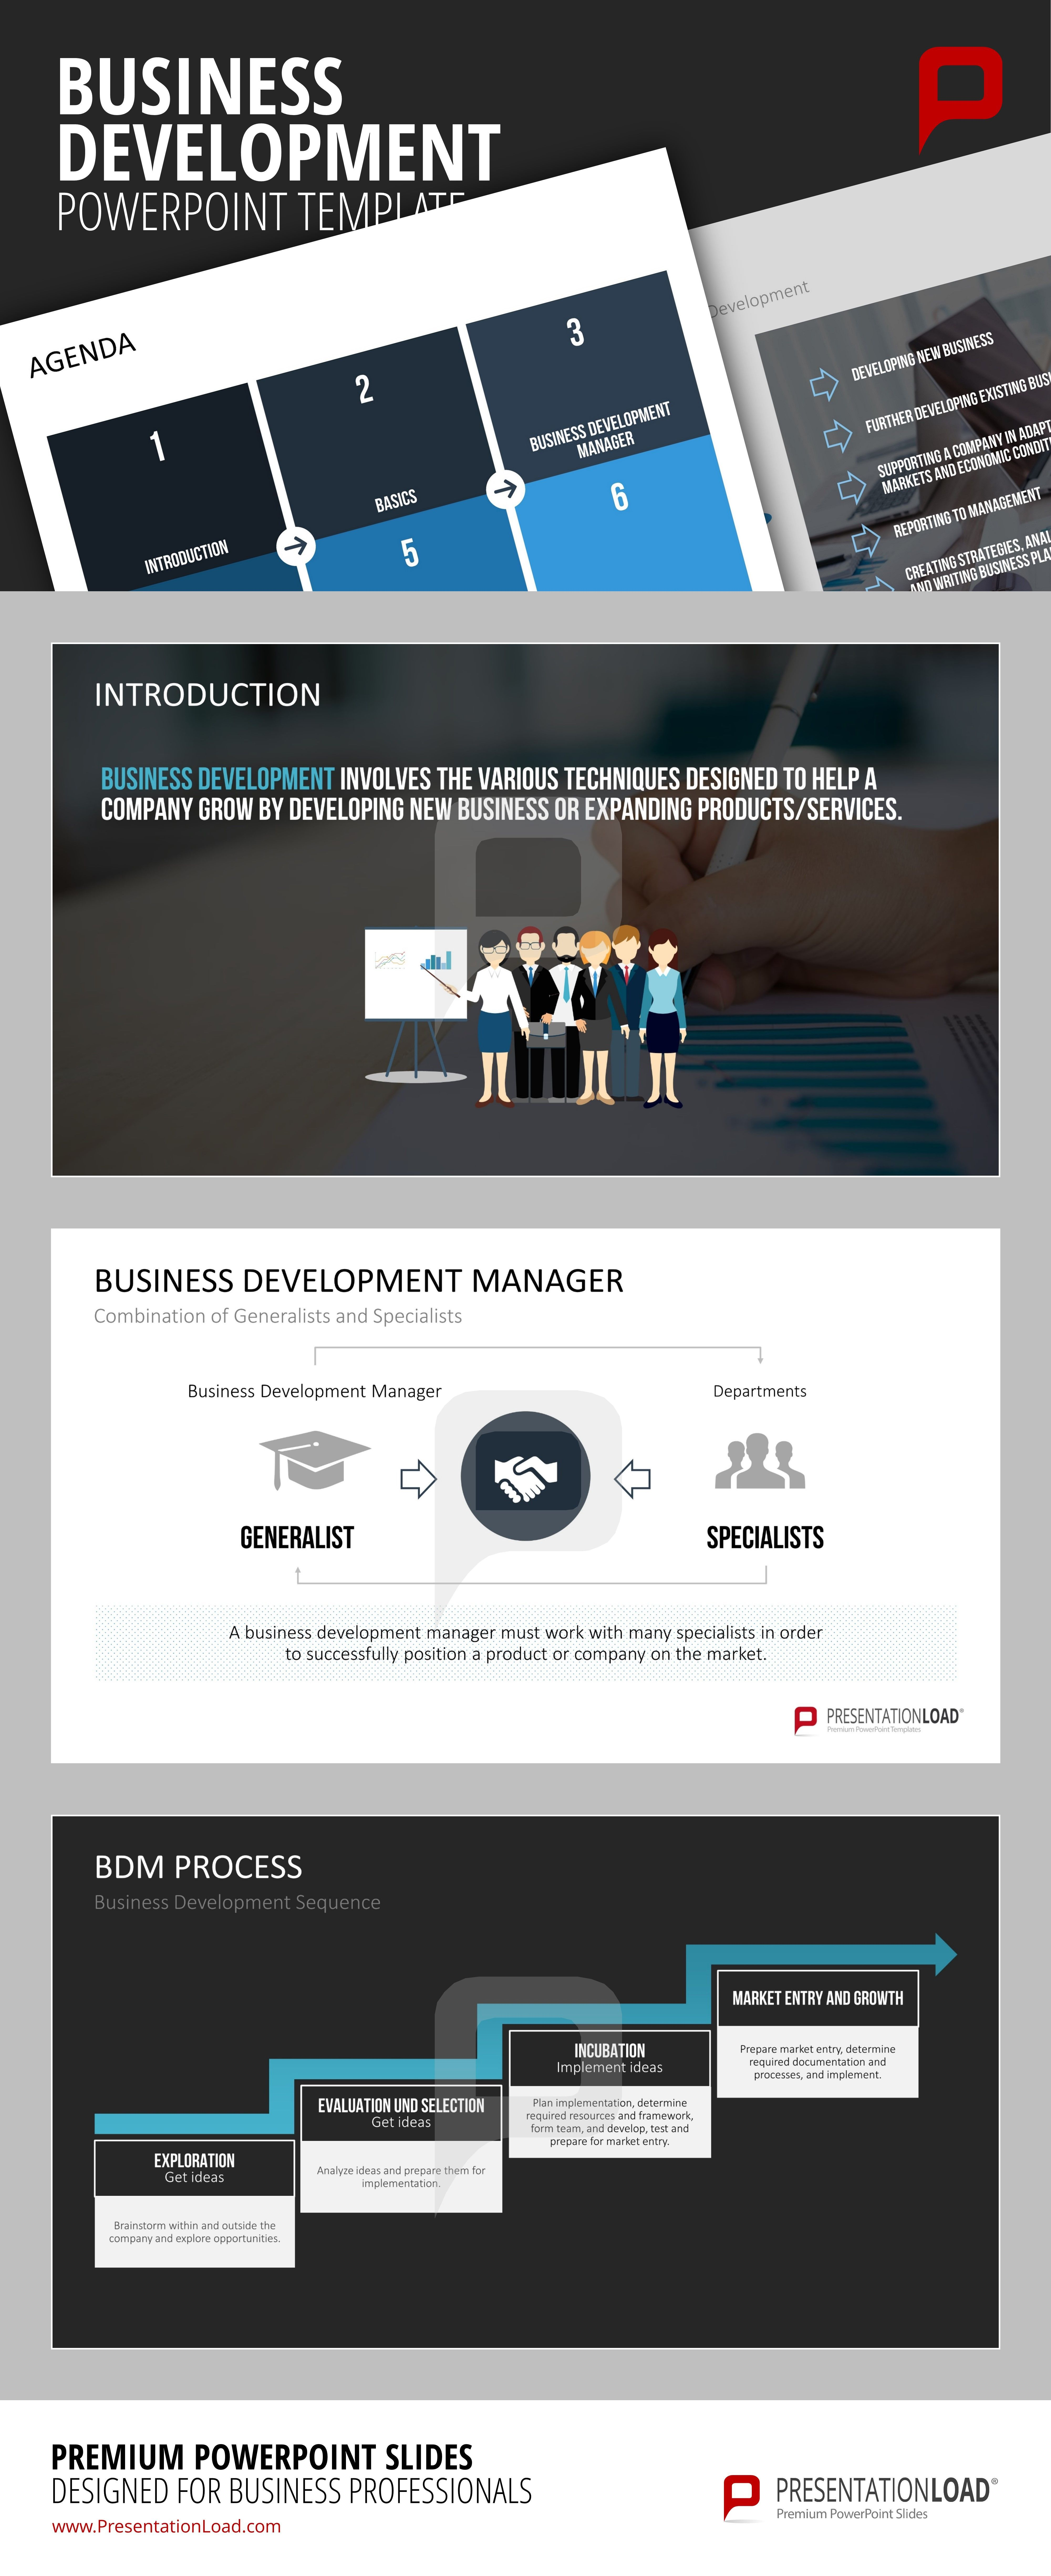 You can use our ready to use slides for your presentation on you can use our ready to use slides for your presentation on business development accmission Gallery